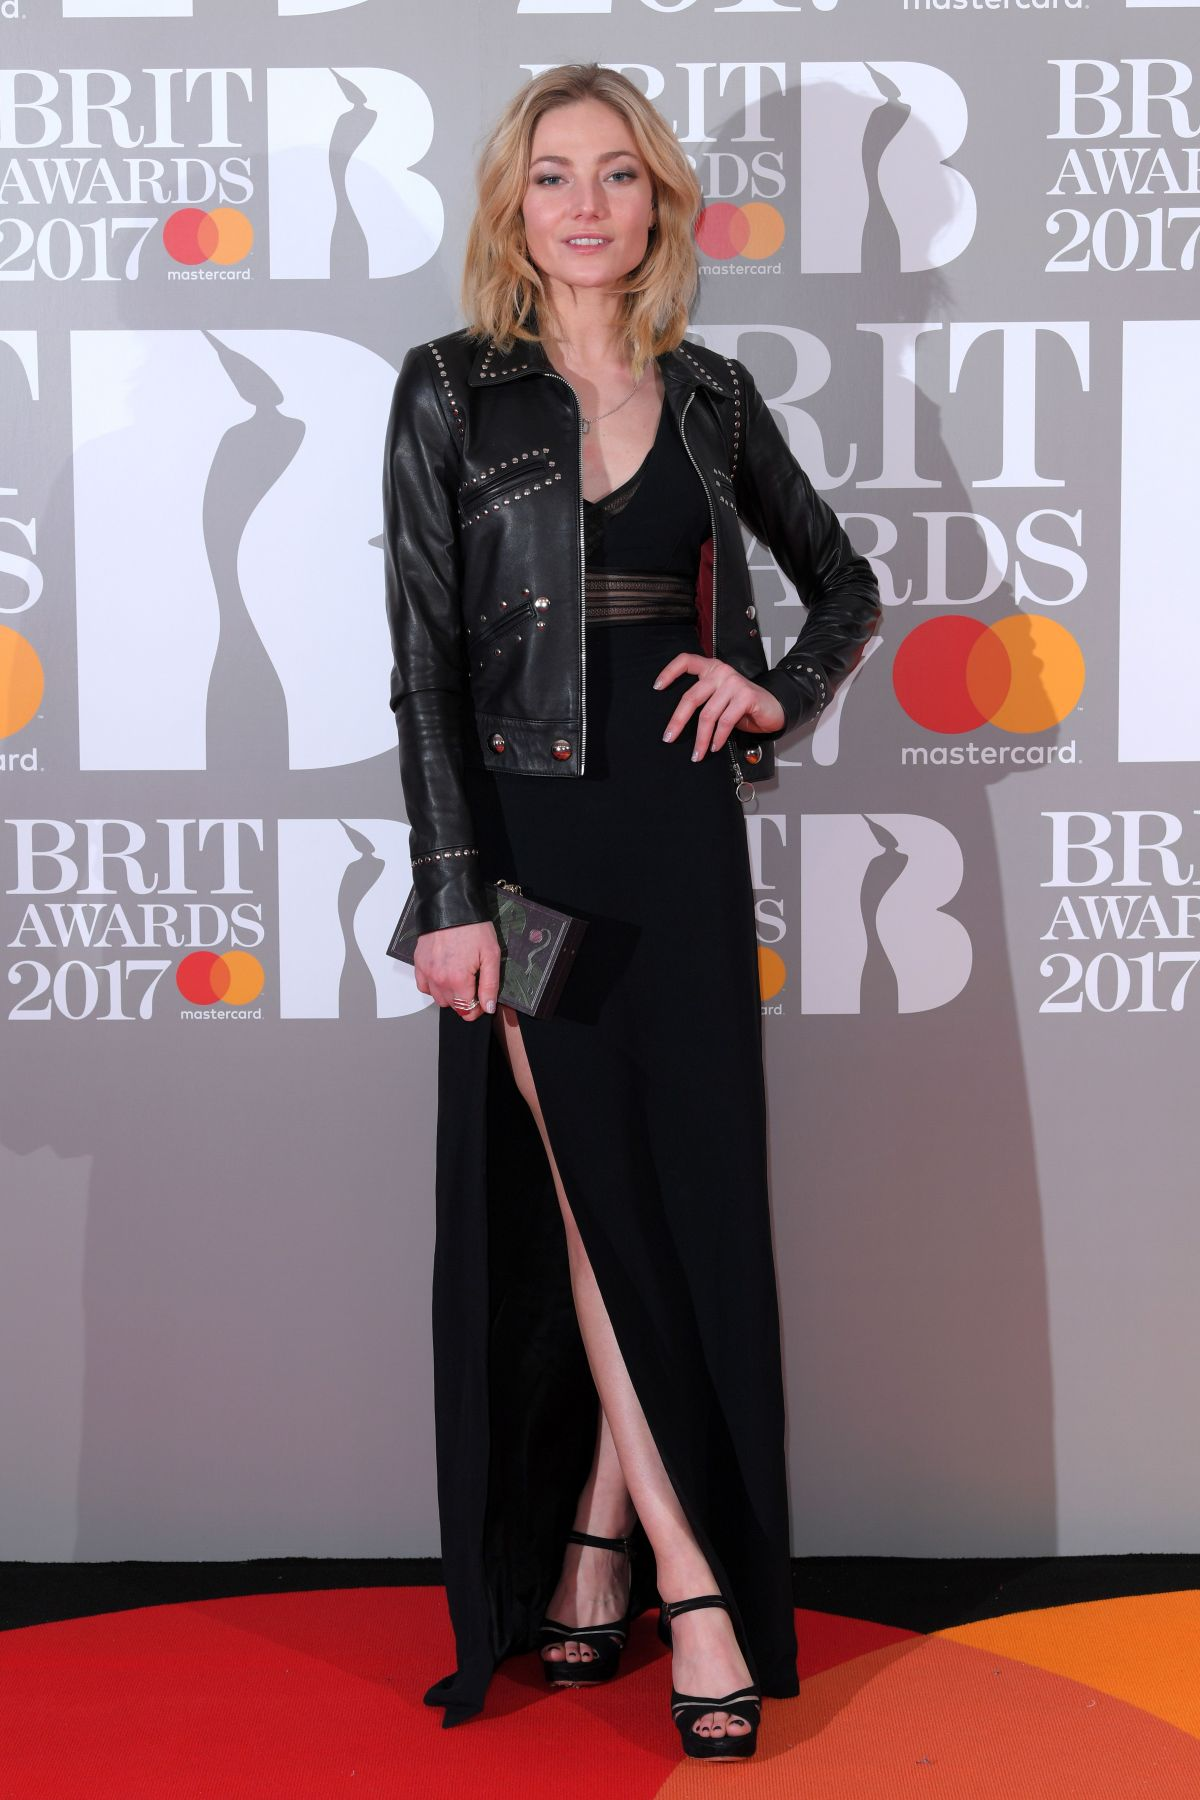 CLARA PAGET at Brit Awards 2017 in London 02/22/2017